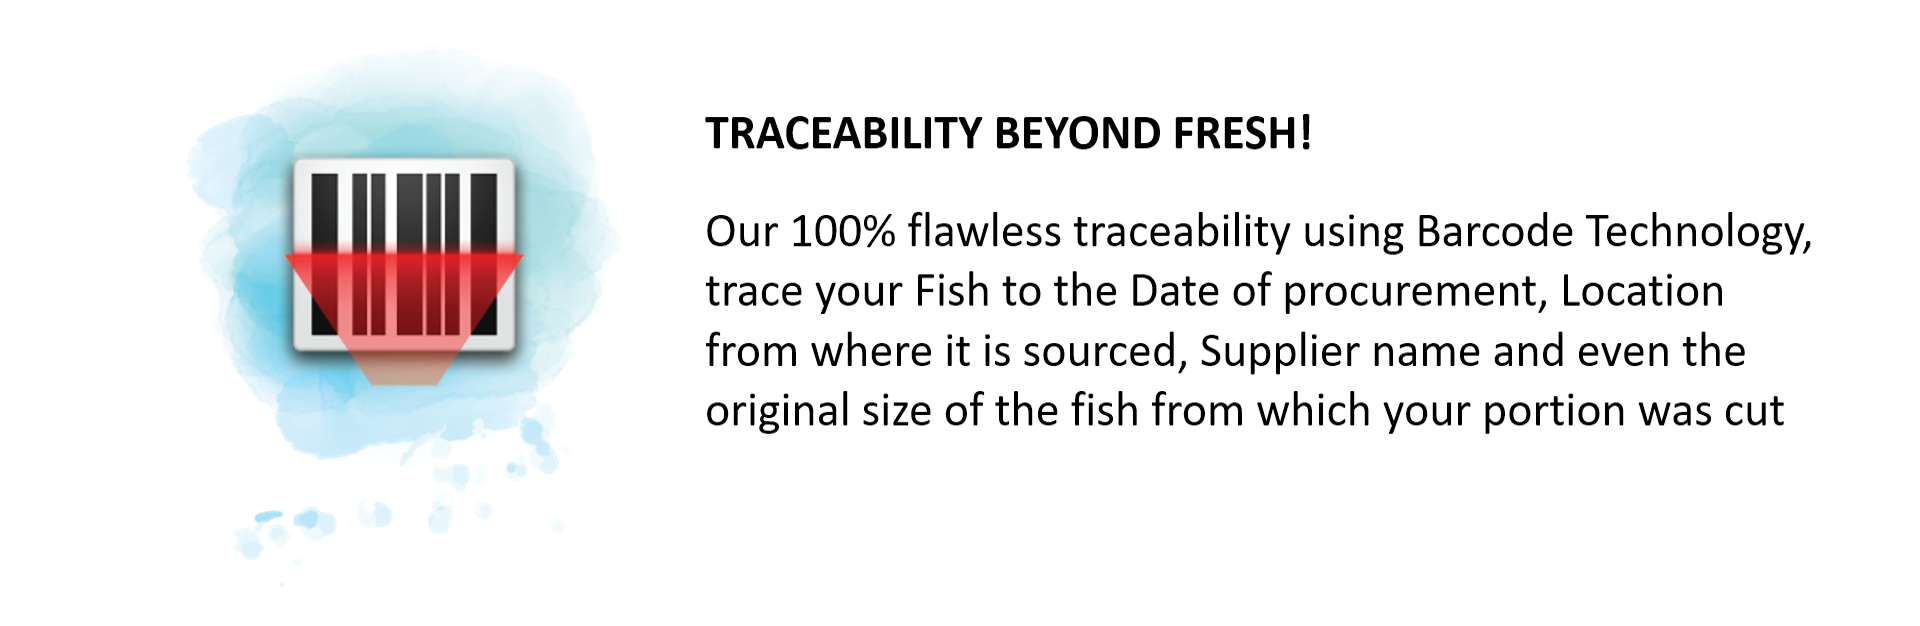 Daily Fish India Think Beyond Fresh_8